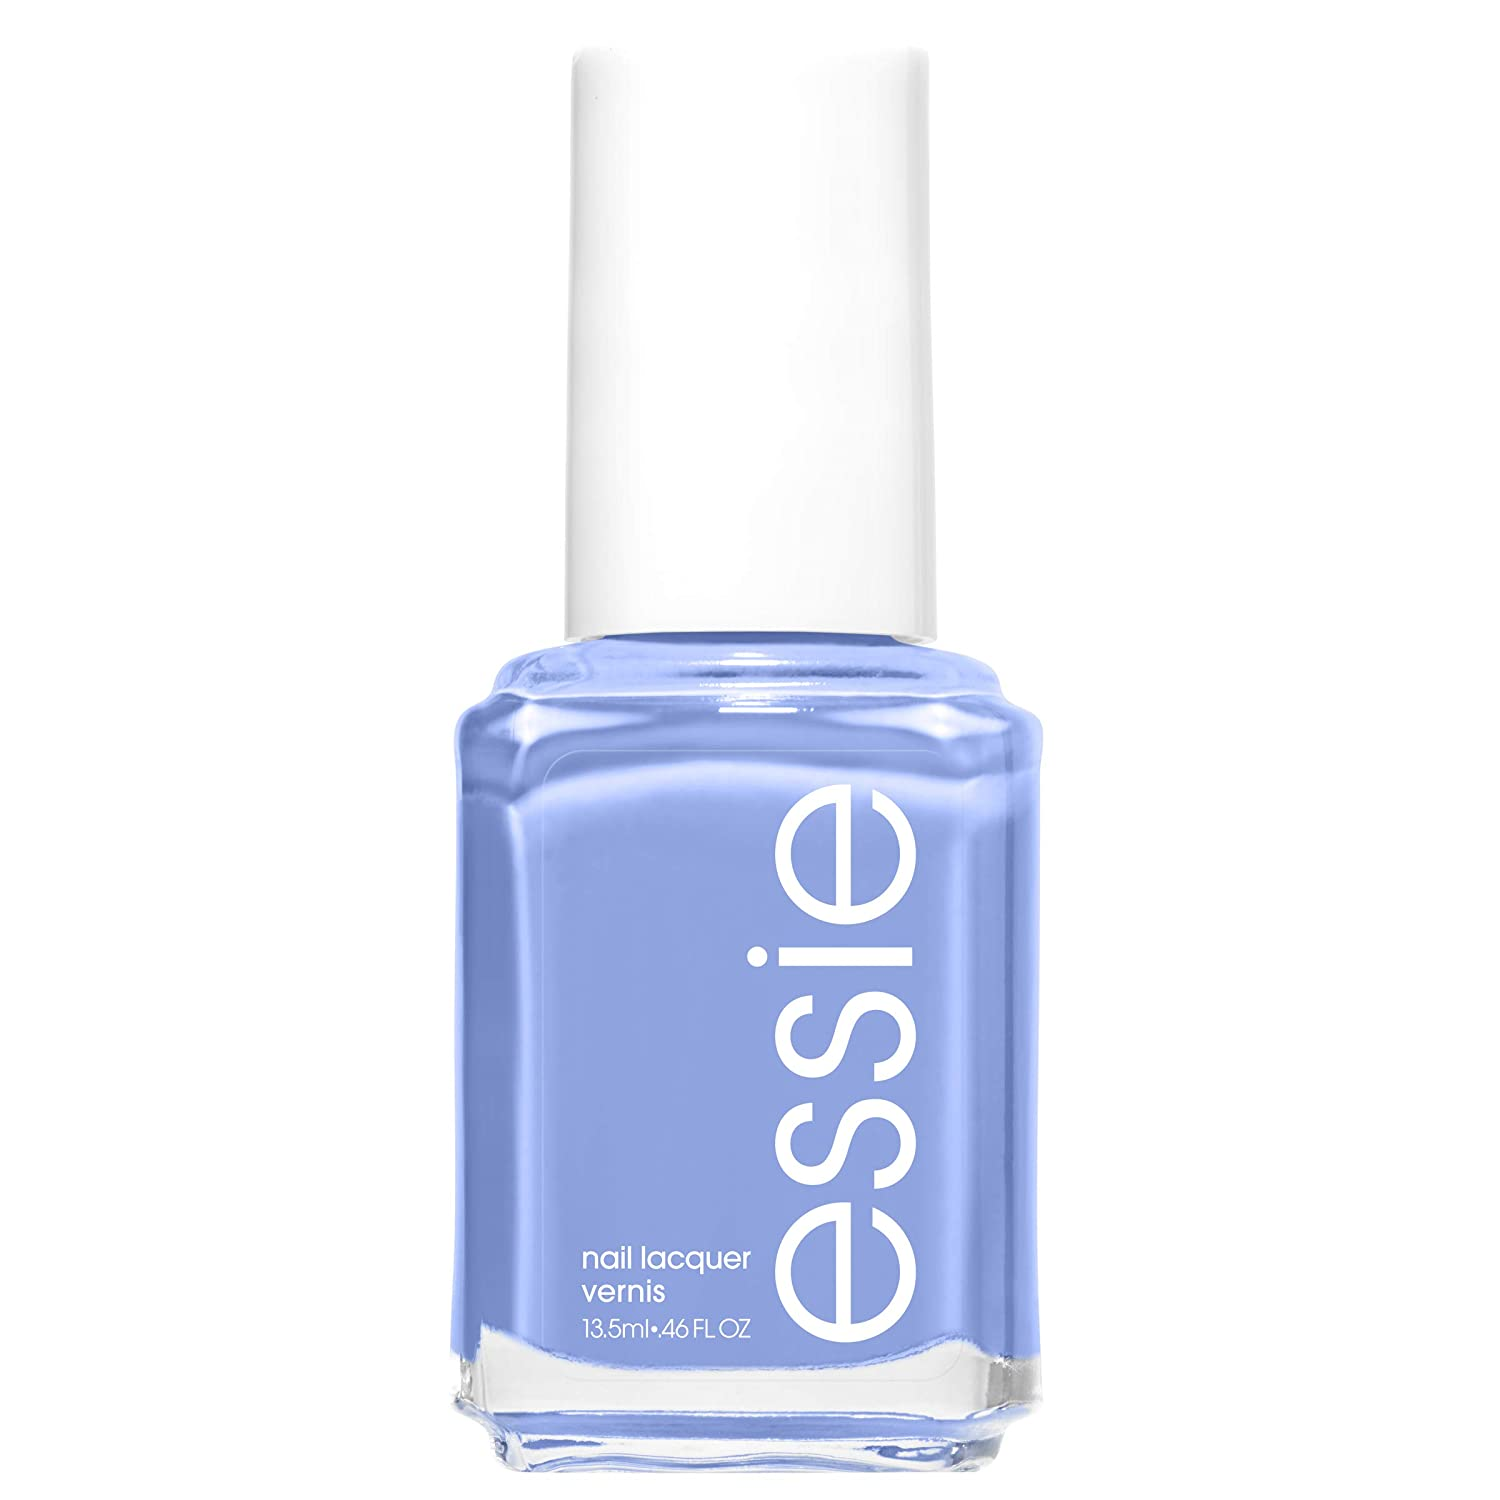 essie Nail Polish, Glossy Shine Finish, Bikini So Teeny, 0.46 fl. oz.